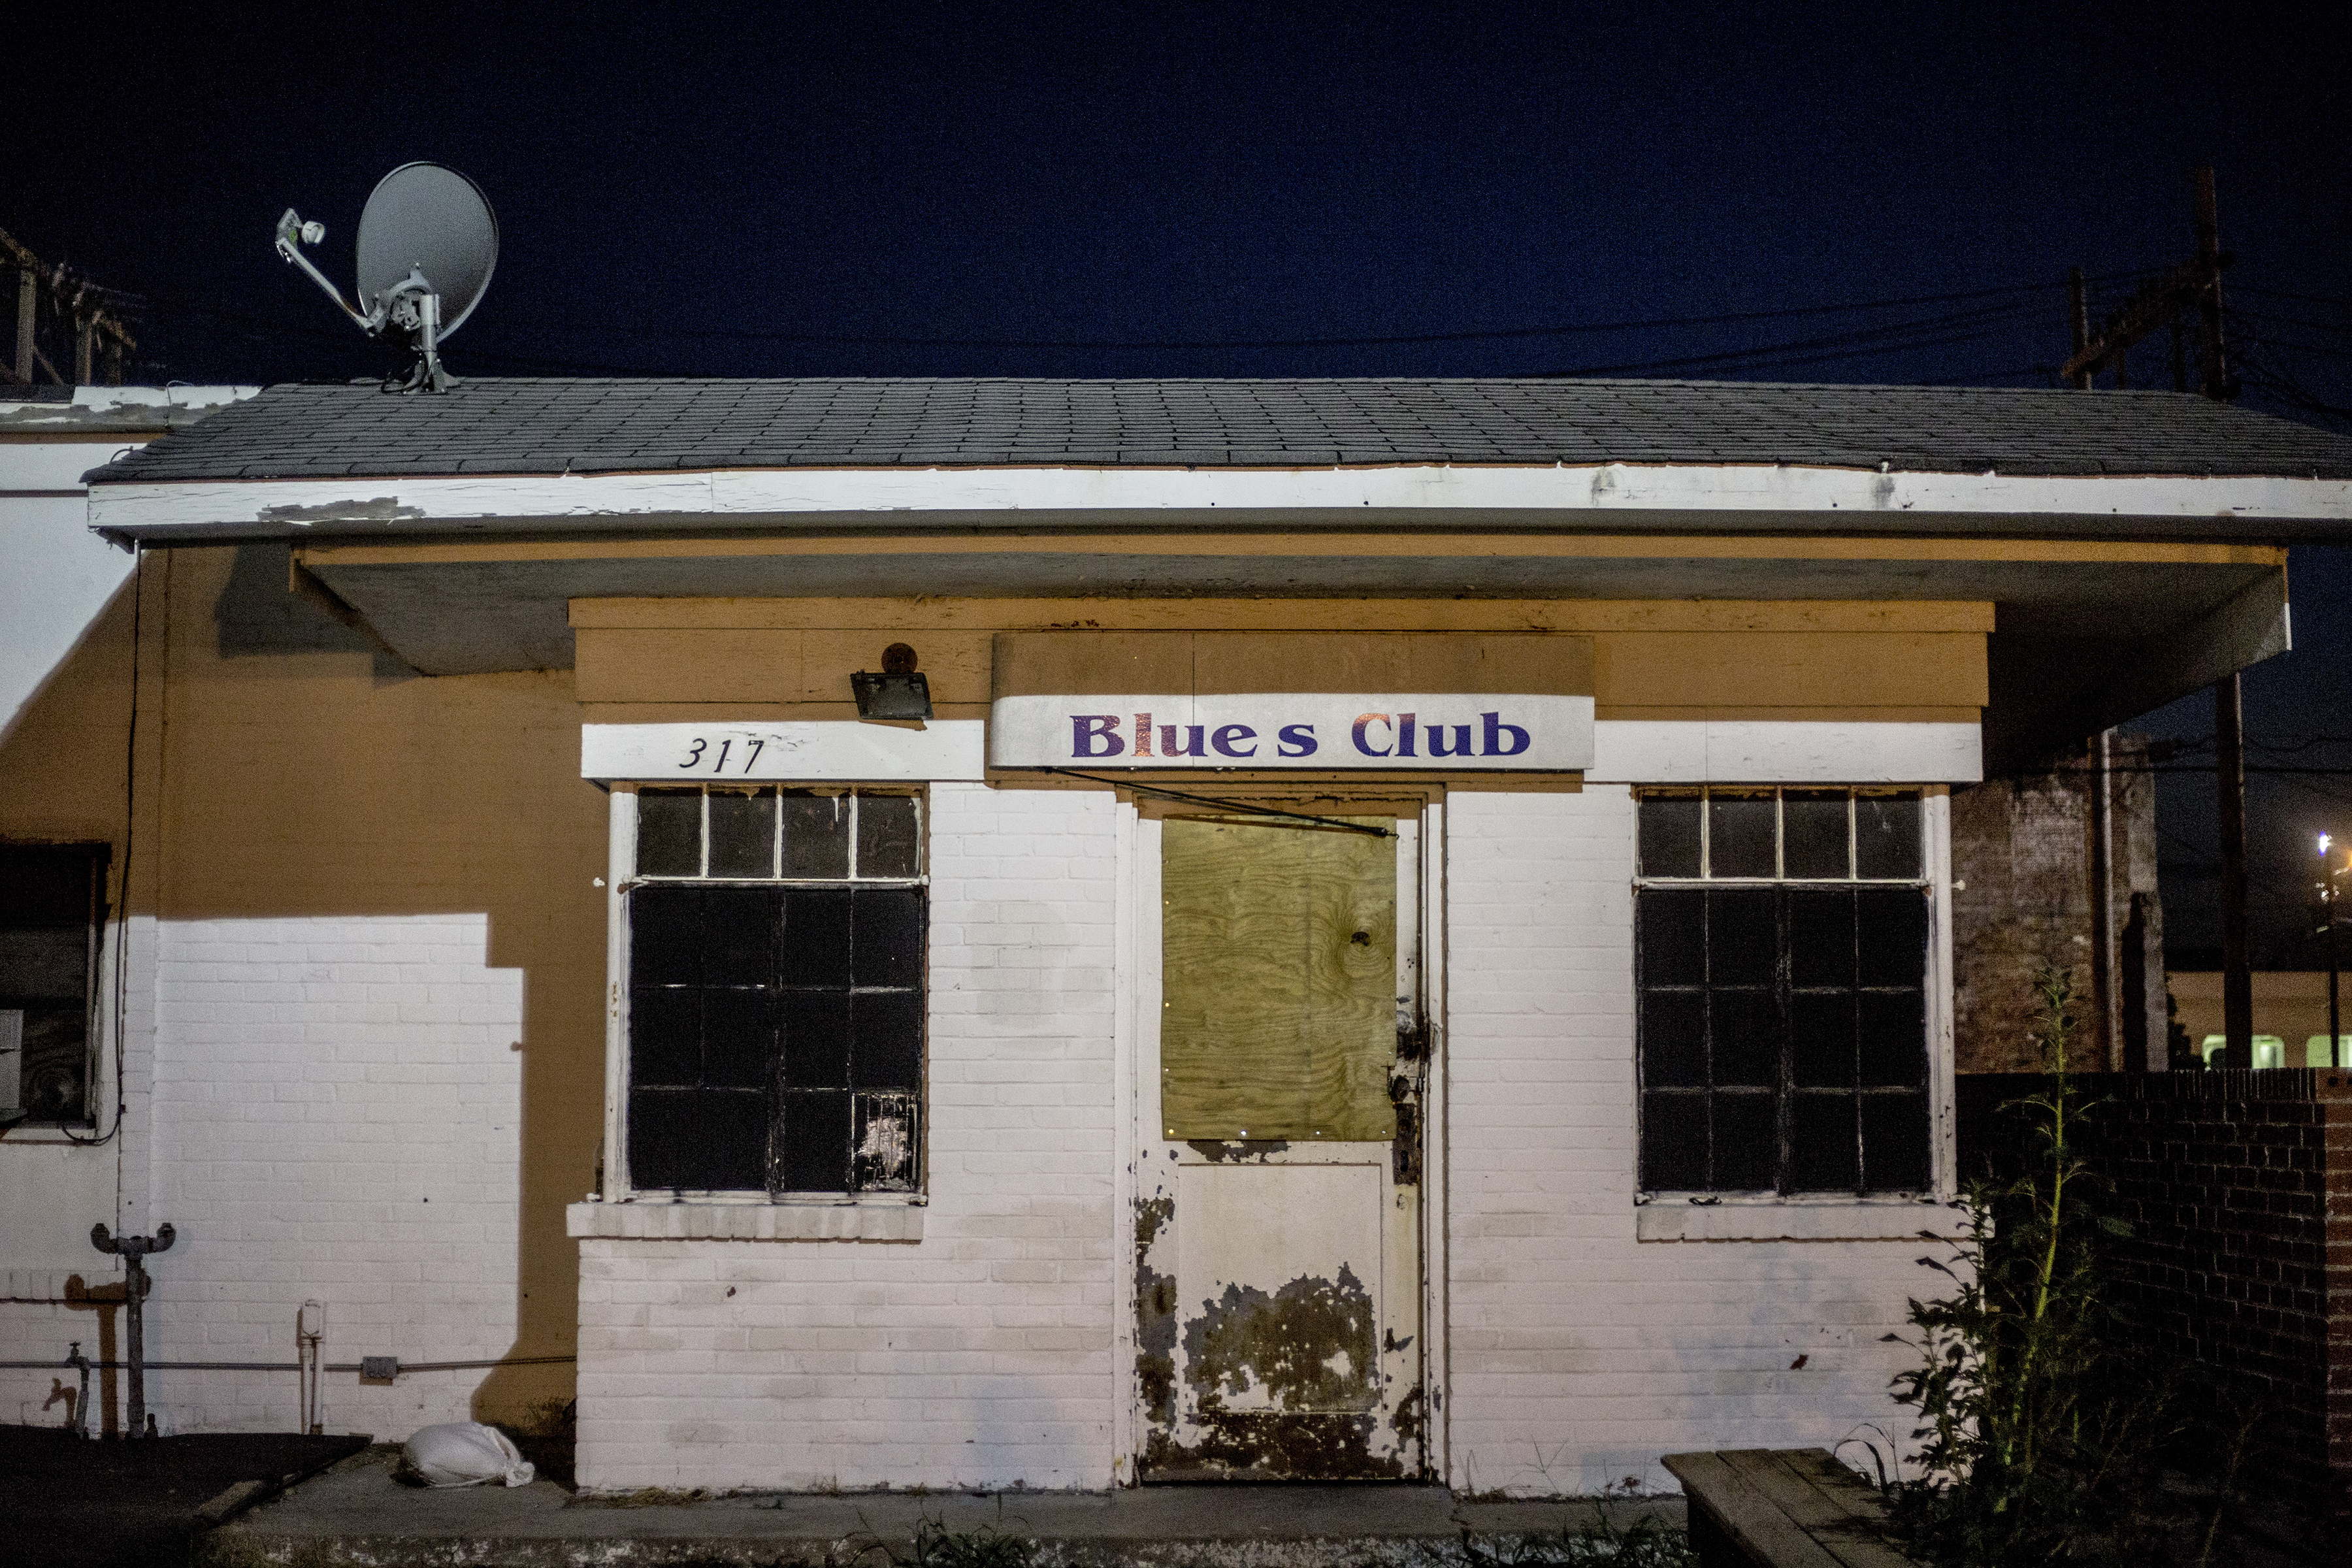 1. The Holy Moly. / 2. The boarded-up exterior of an old blues club in downtown Clarksdale.